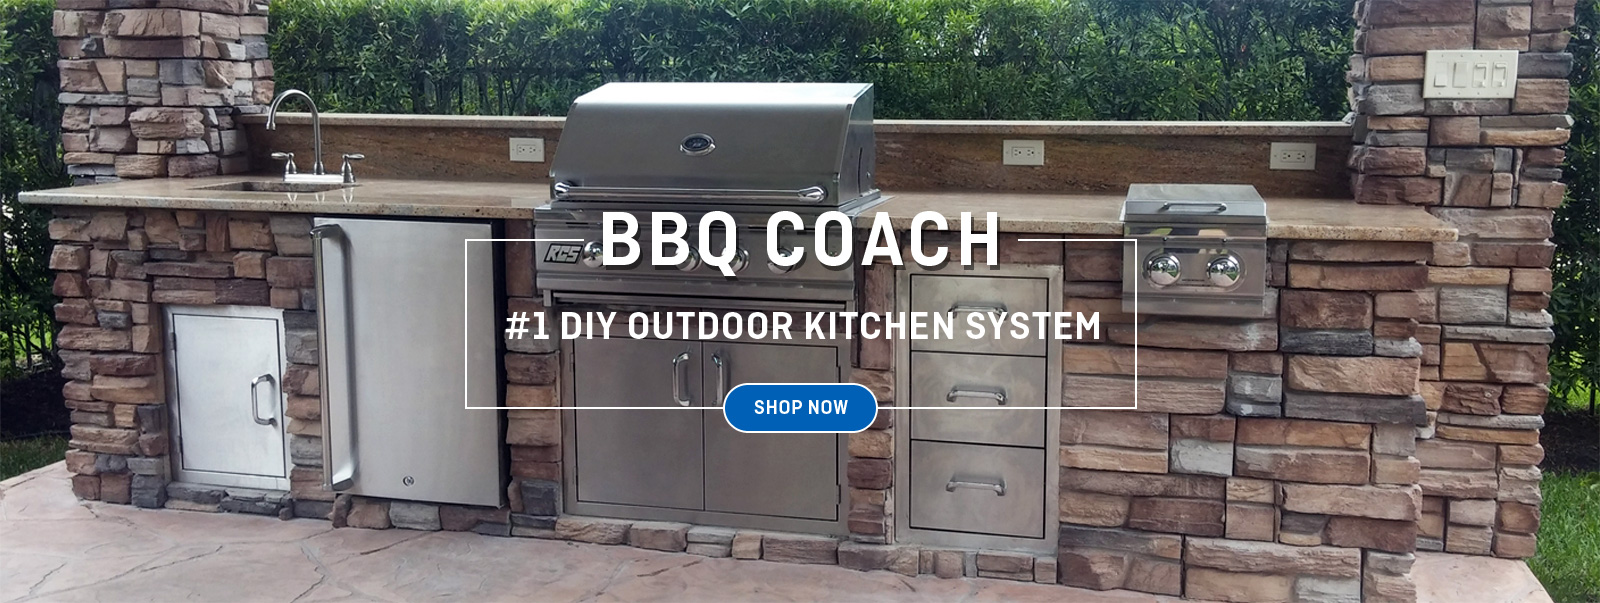 BBQ Coach   DIY Outdoor Kitchen System